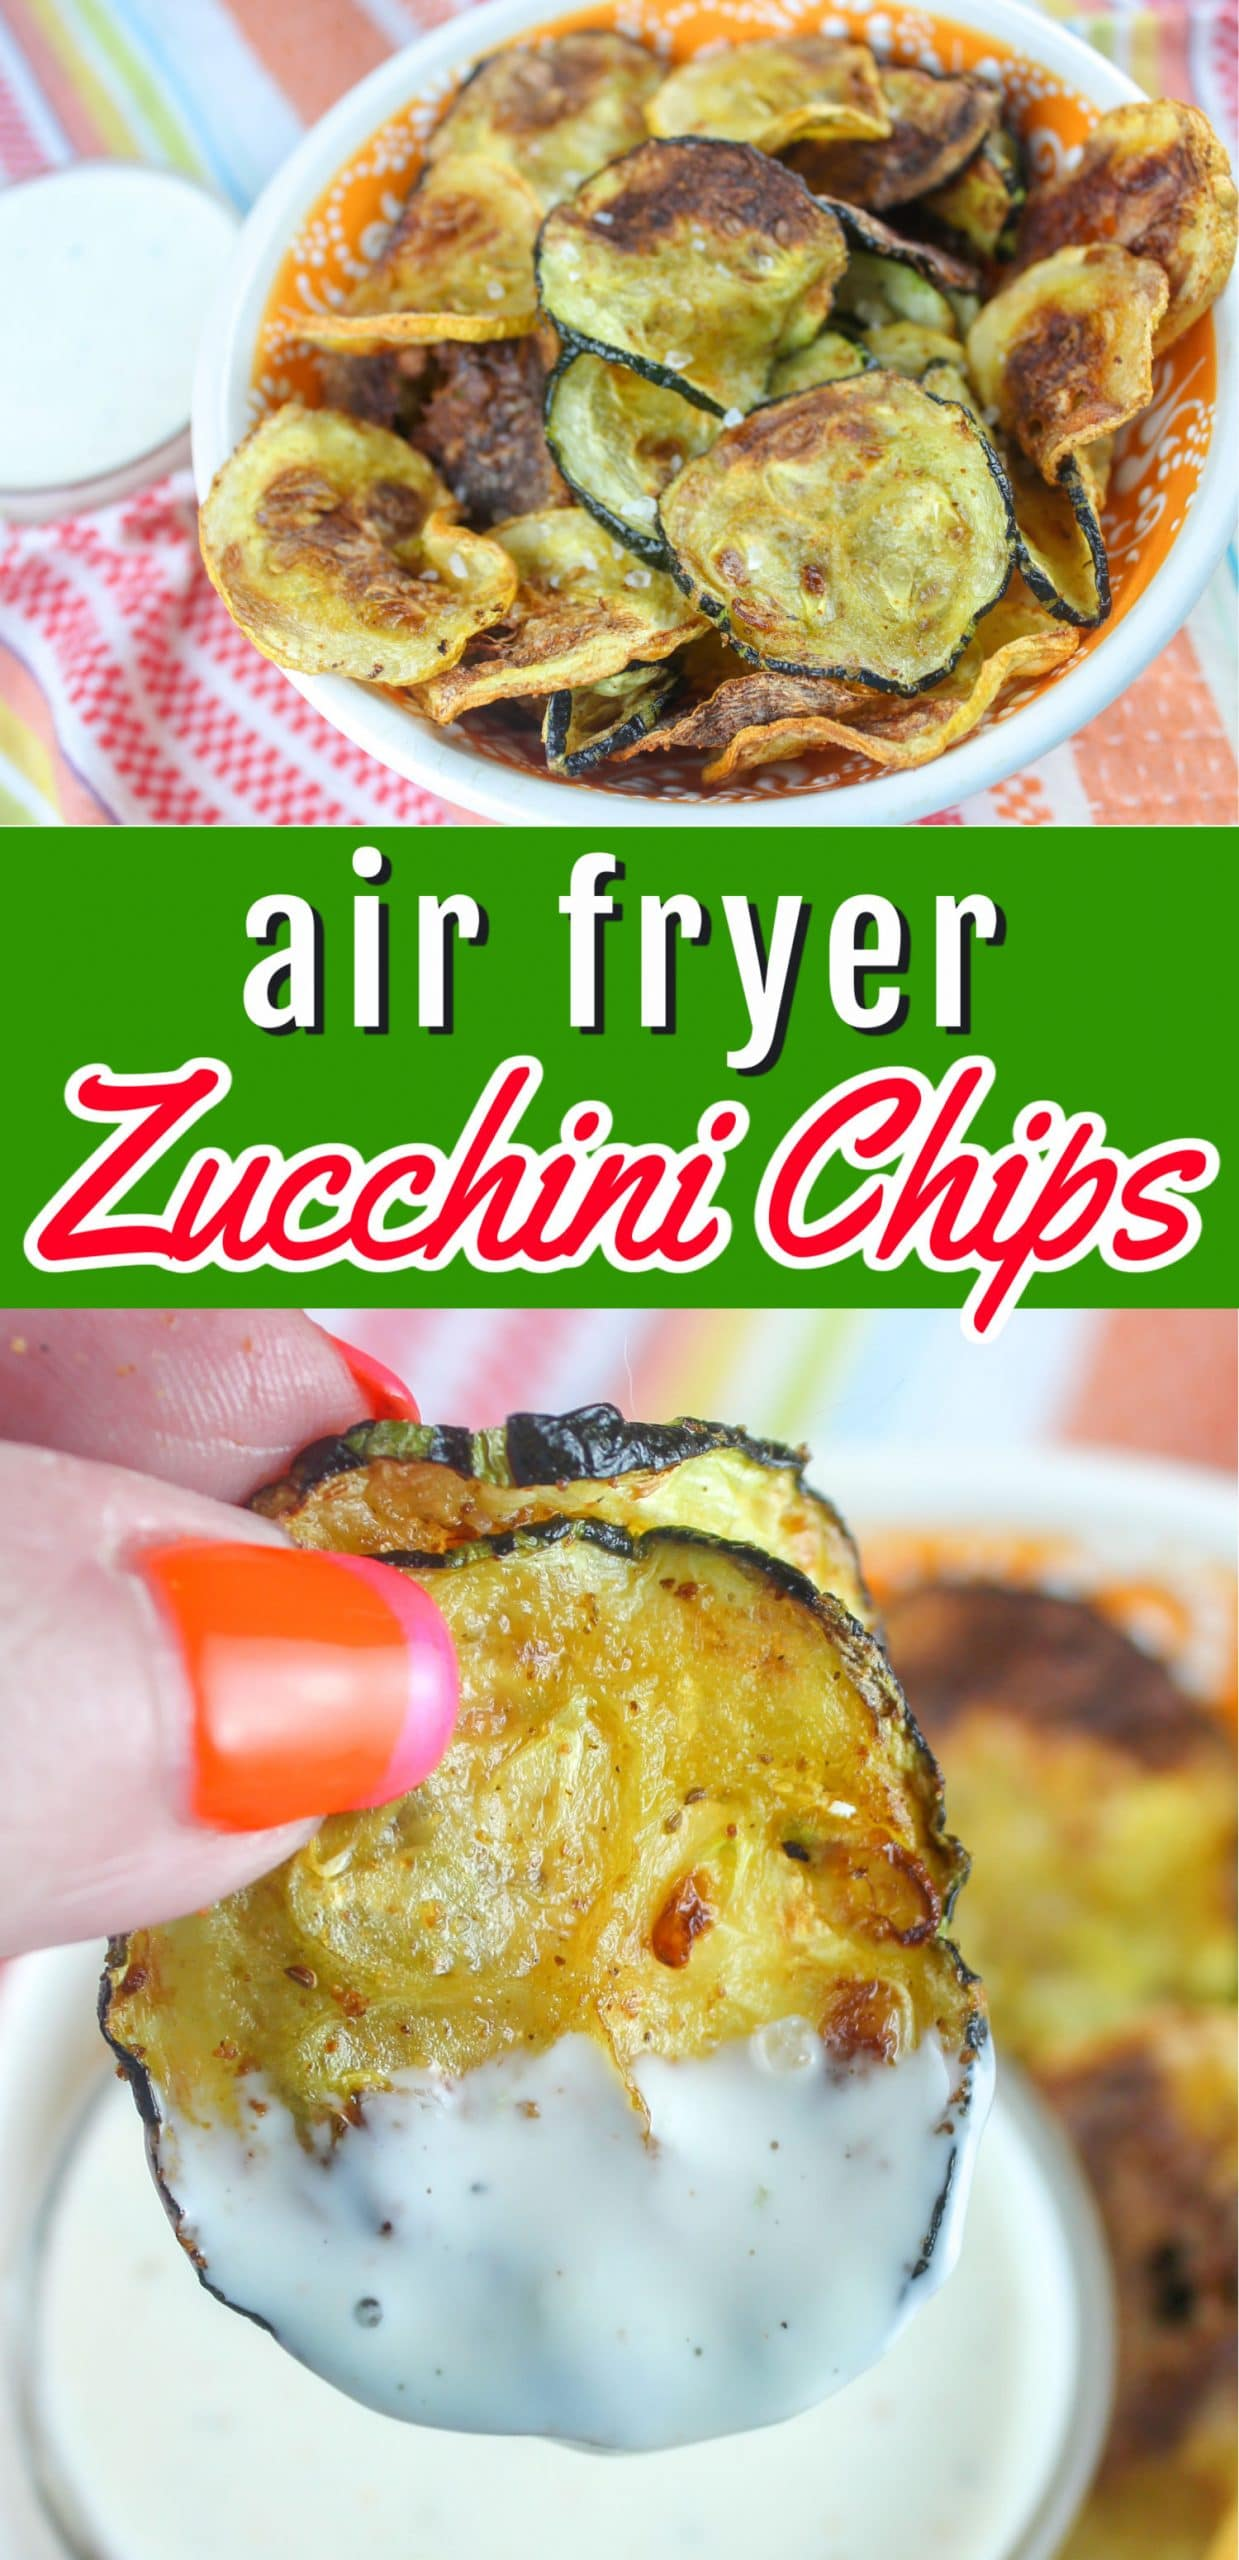 I love my breaded veggies in the air fryer but sometimes a simple EVOO + seasoning is best! These Air Fryer Zucchini Chips are just the side dish for that treatment. Zucchini doesn't have a ton of flavor on it's own - so just adding a bit of EVOO and garlic herb makes it so delish! via @foodhussy